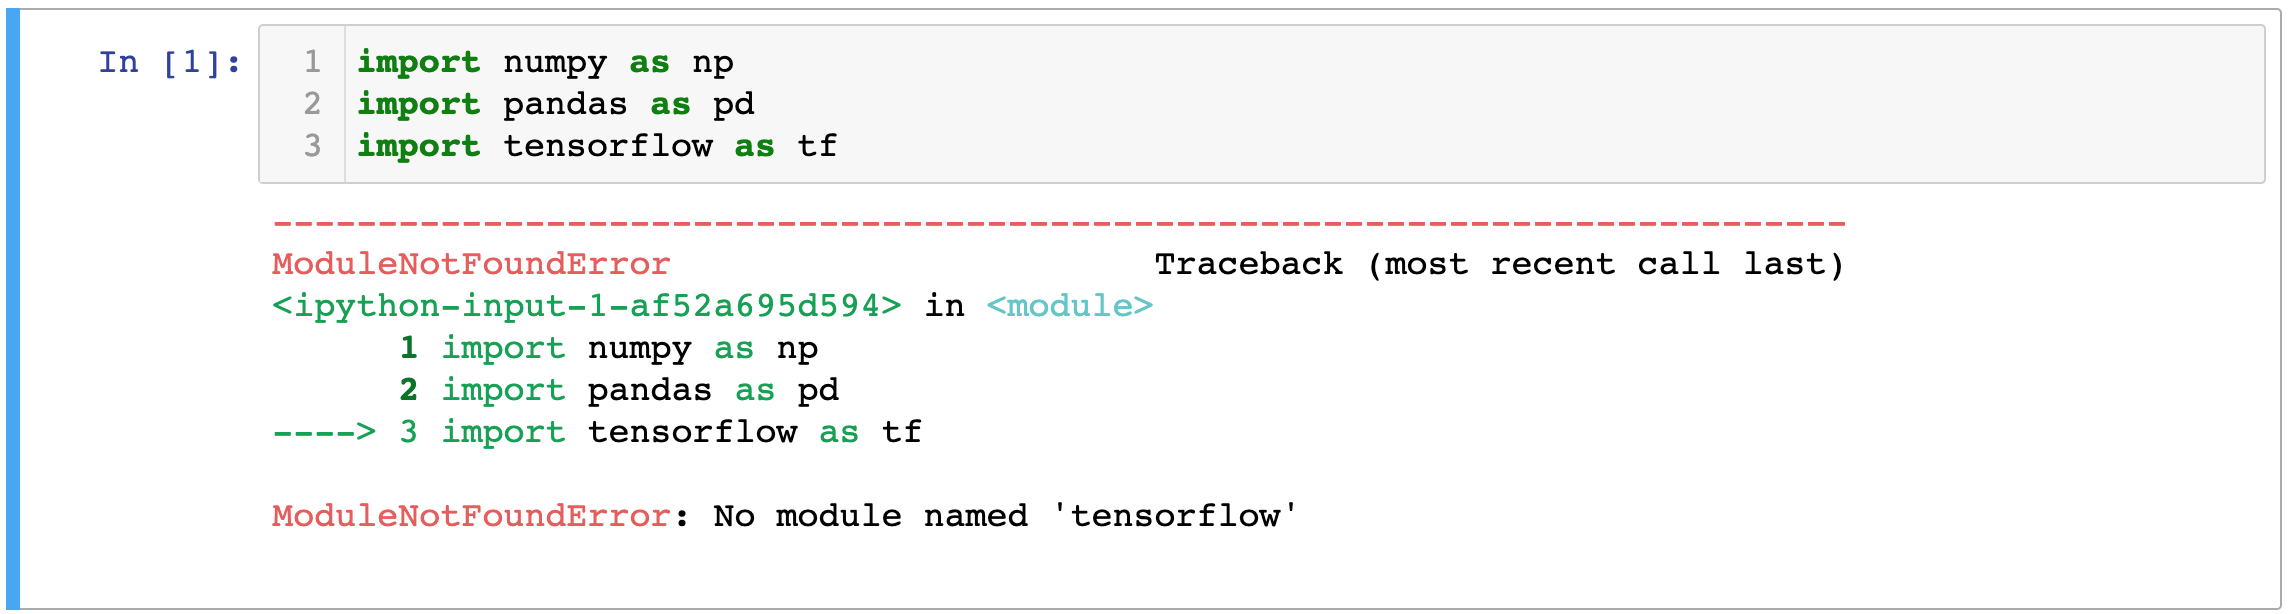 An error message received when trying to import TensorFlow